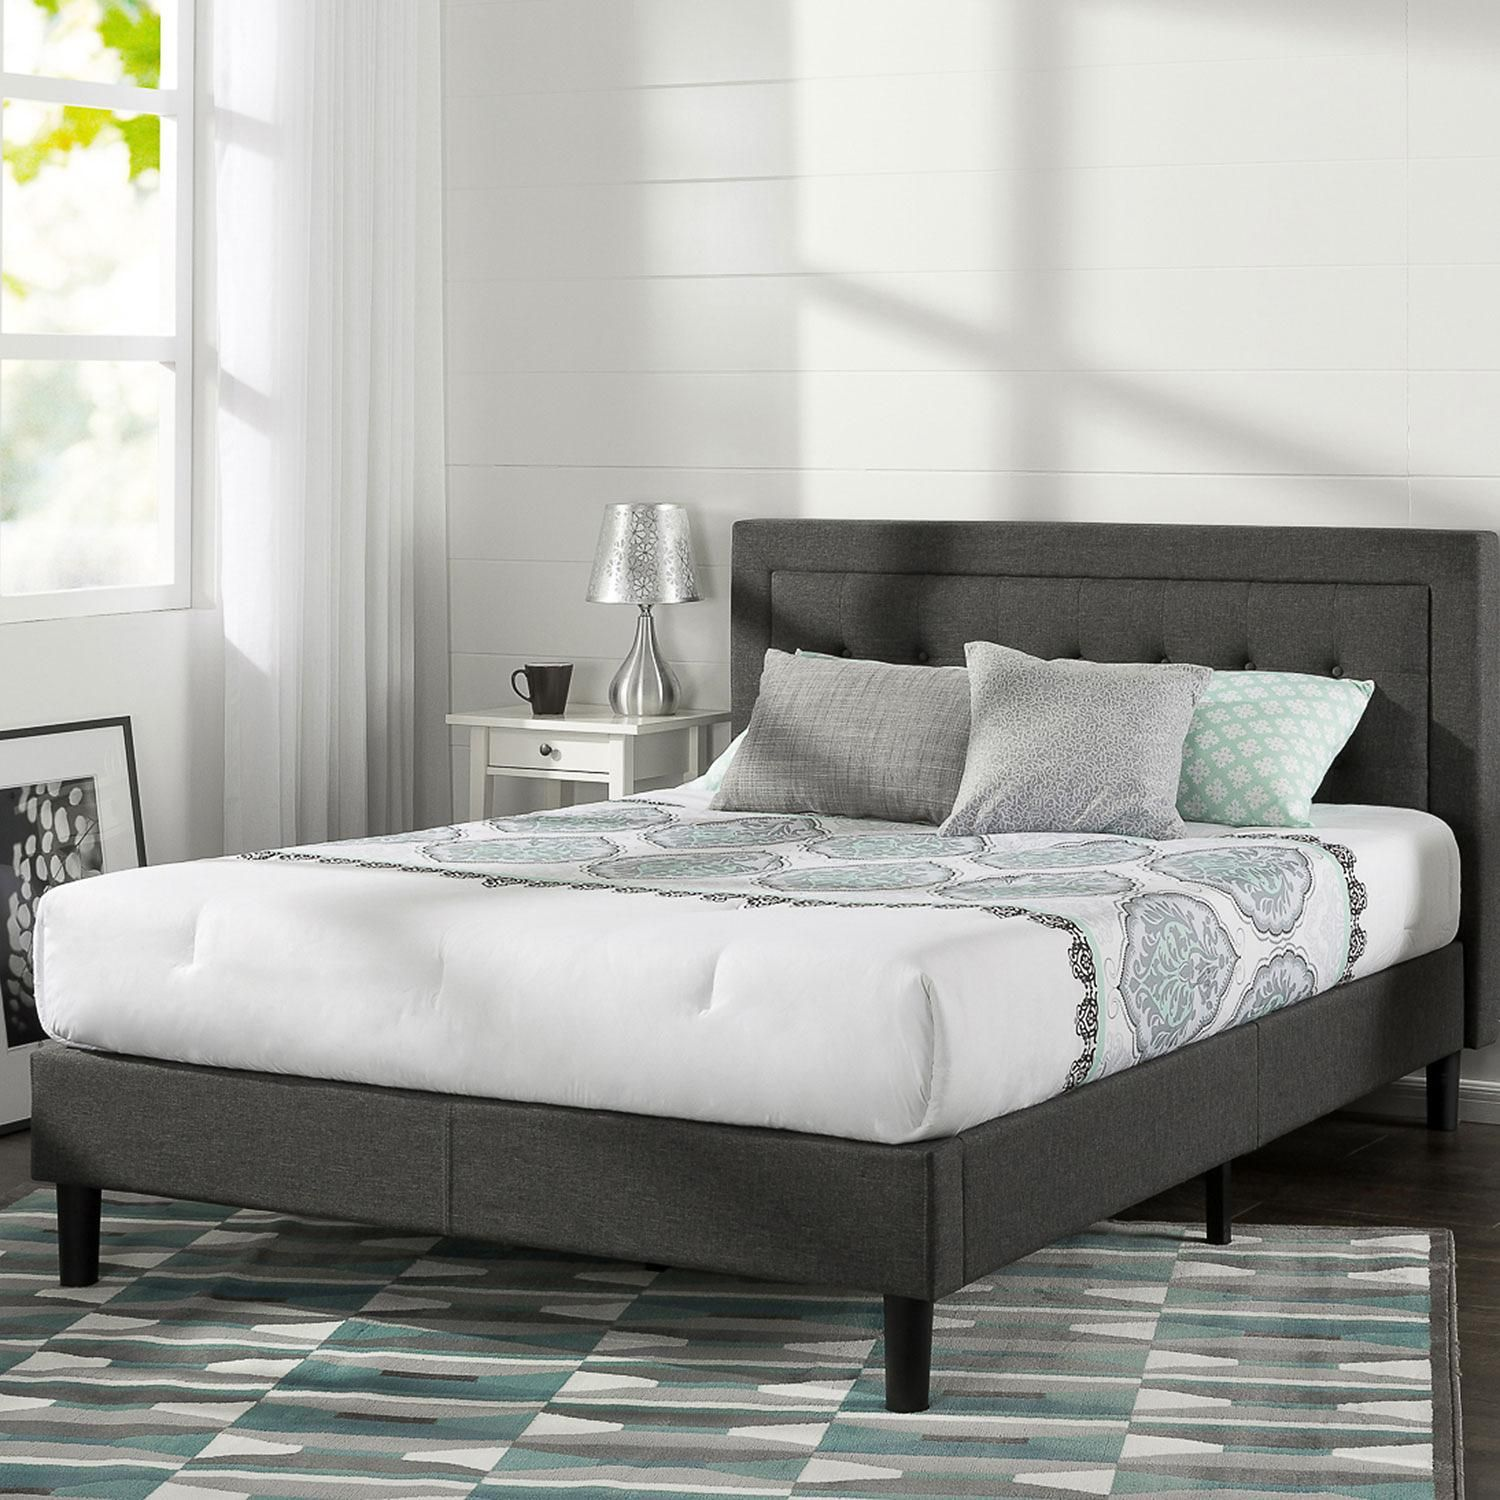 Night Therapy Upholstered Platform Bed With Wooden Slats Dark